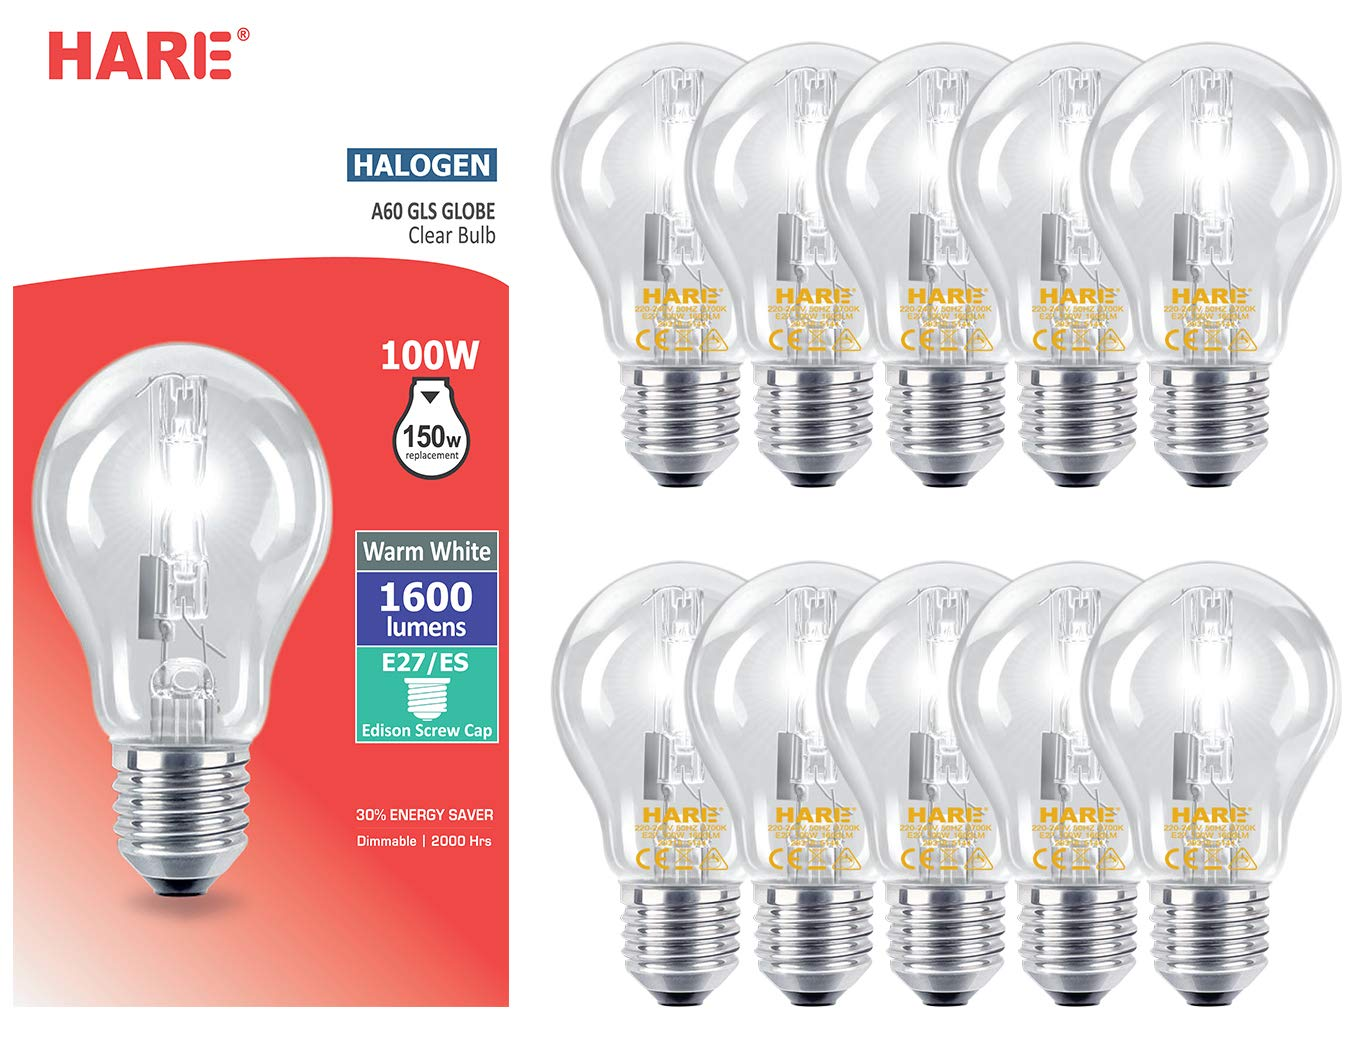 10 x Halogen GLS Edison Screw Cap Light Bulbs 100W Equivalent 150W GLS E27 (ES) Clear Bulb Incandescent Energy Saving Dimmable Bulbs